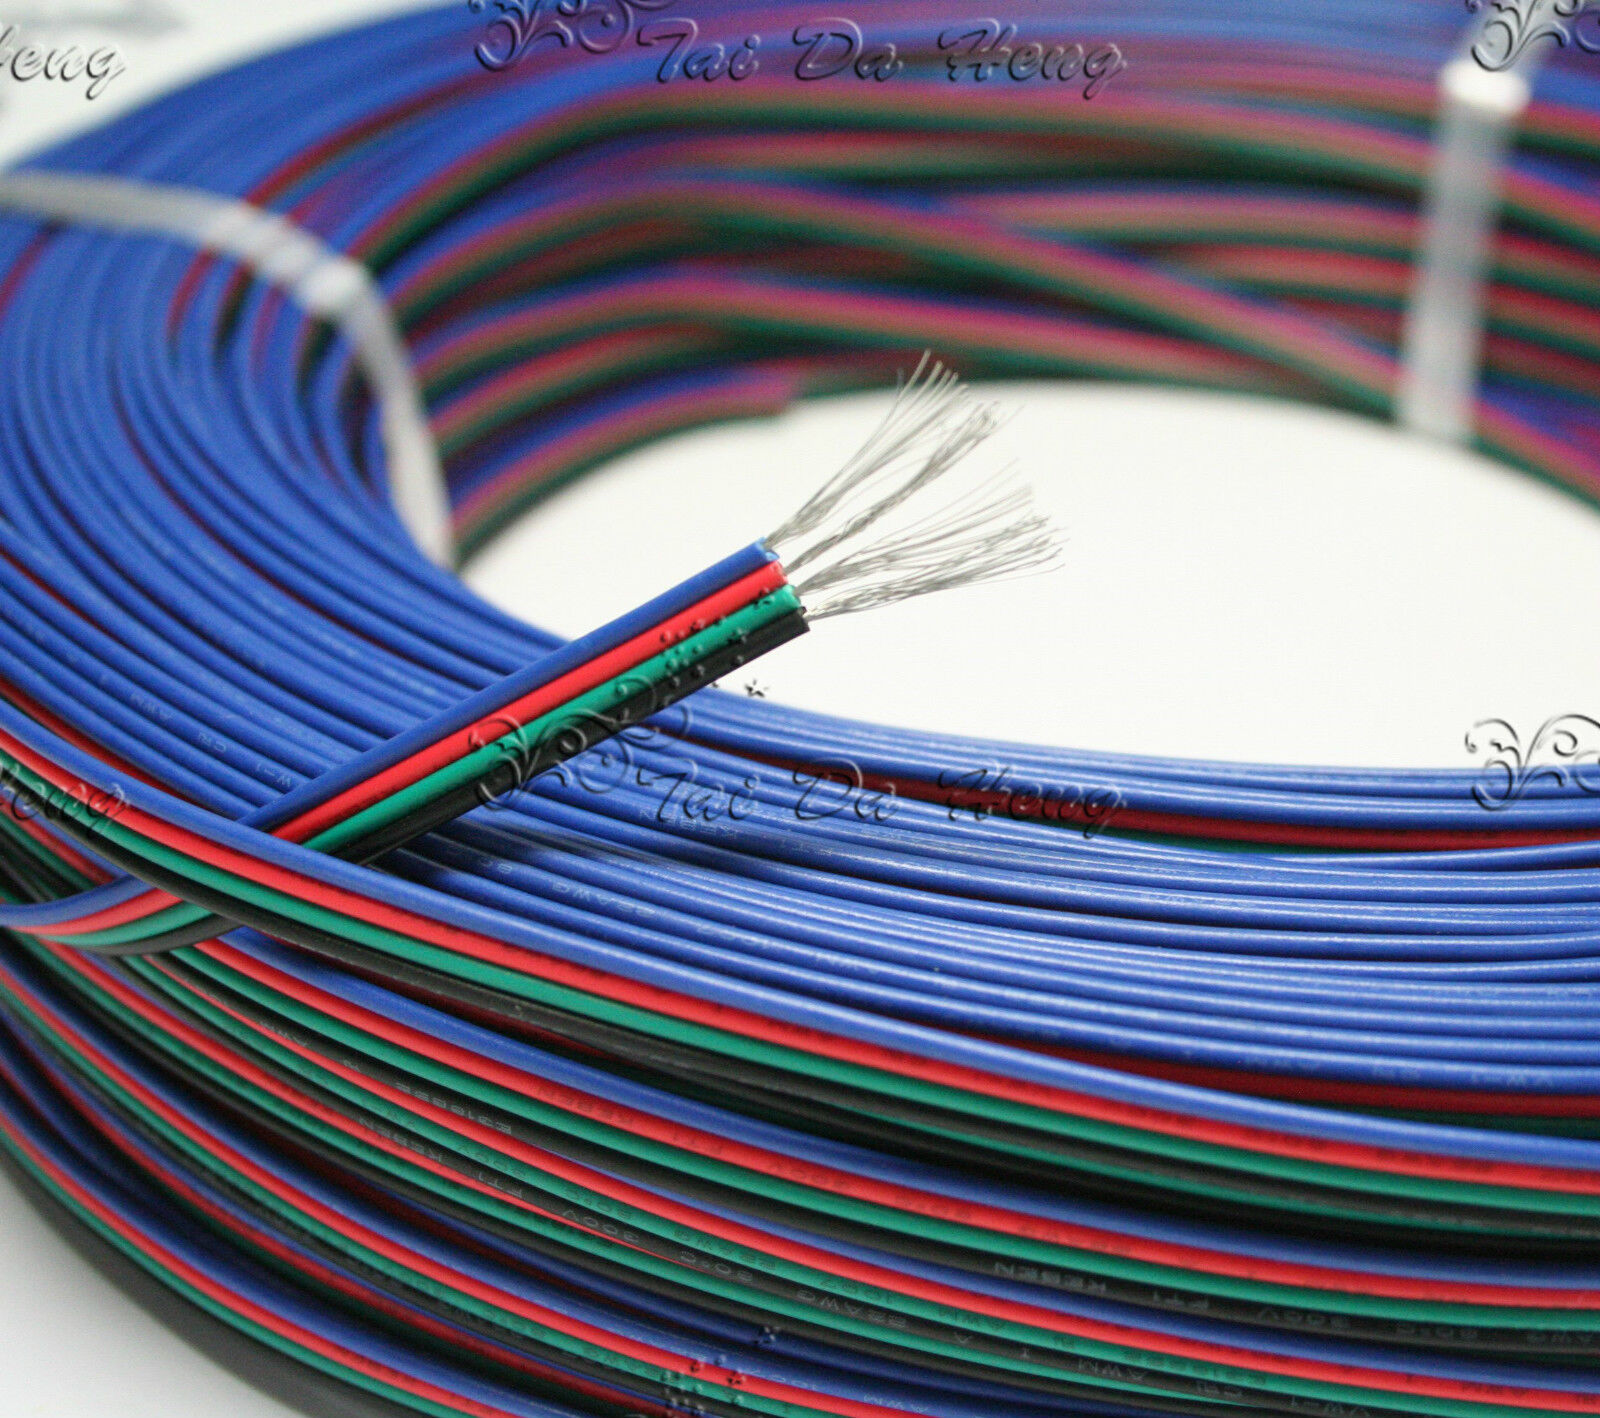 5m 4 pin wire rgb extension cable cord 22awg for 3528 5050 led strip light ebay. Black Bedroom Furniture Sets. Home Design Ideas